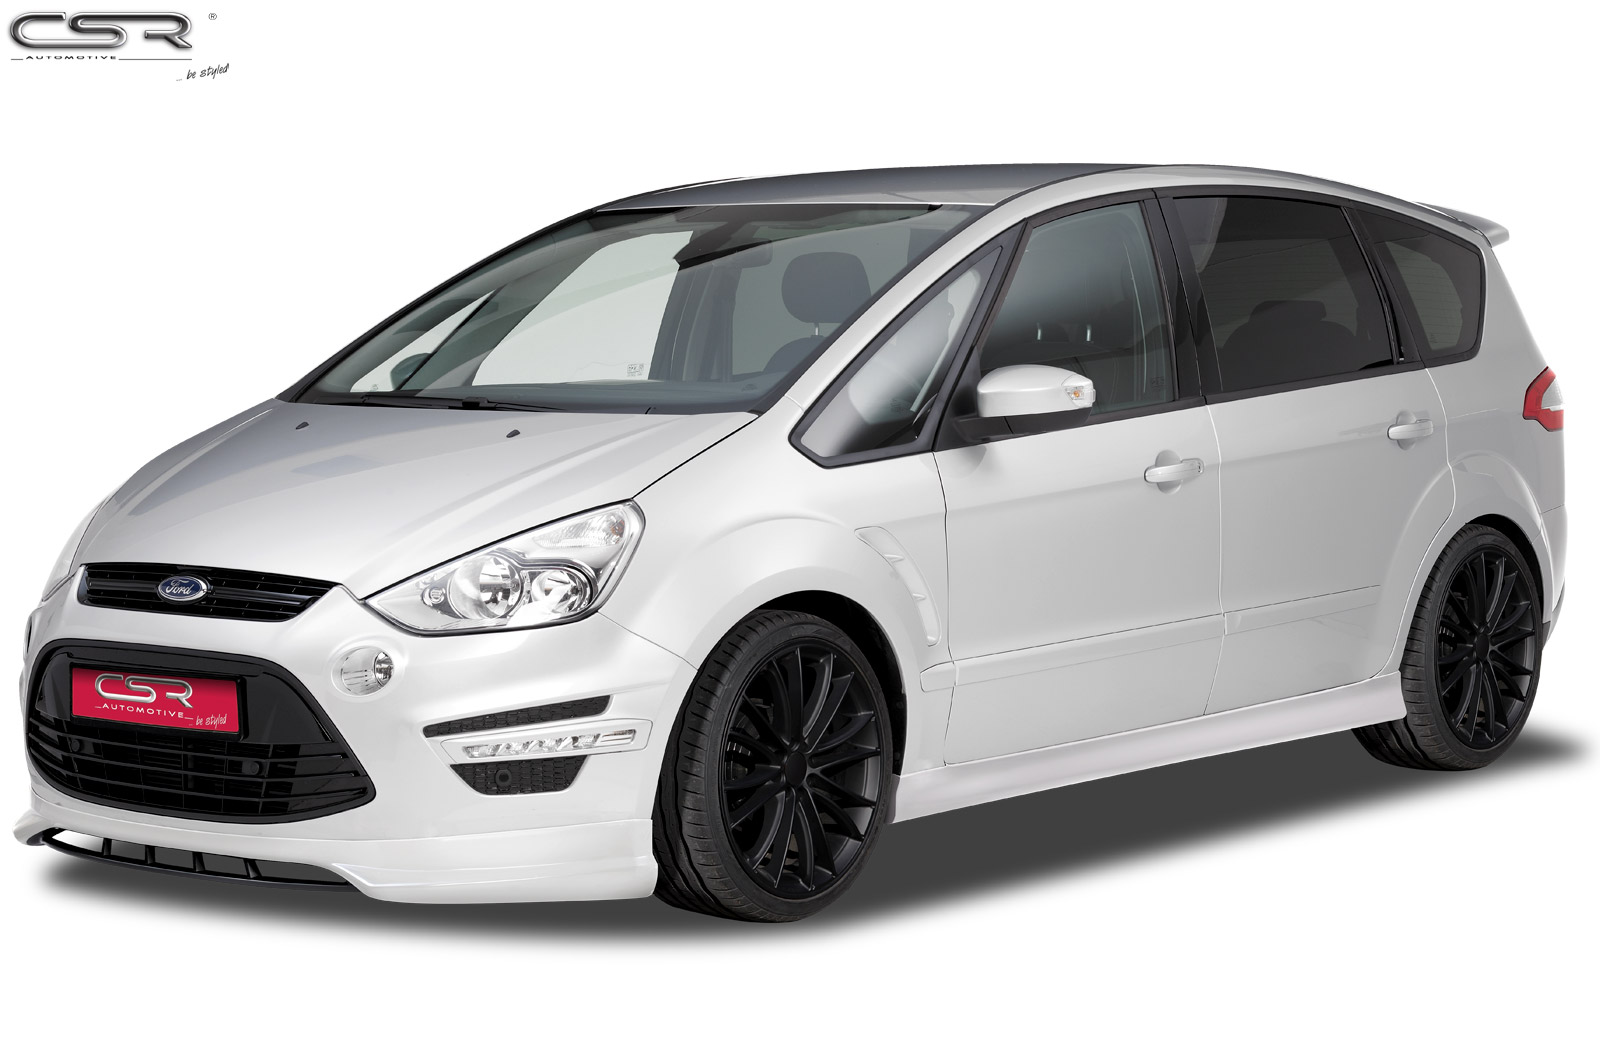 exteri r ford s max p edn spoiler fa222 csr tuning. Black Bedroom Furniture Sets. Home Design Ideas